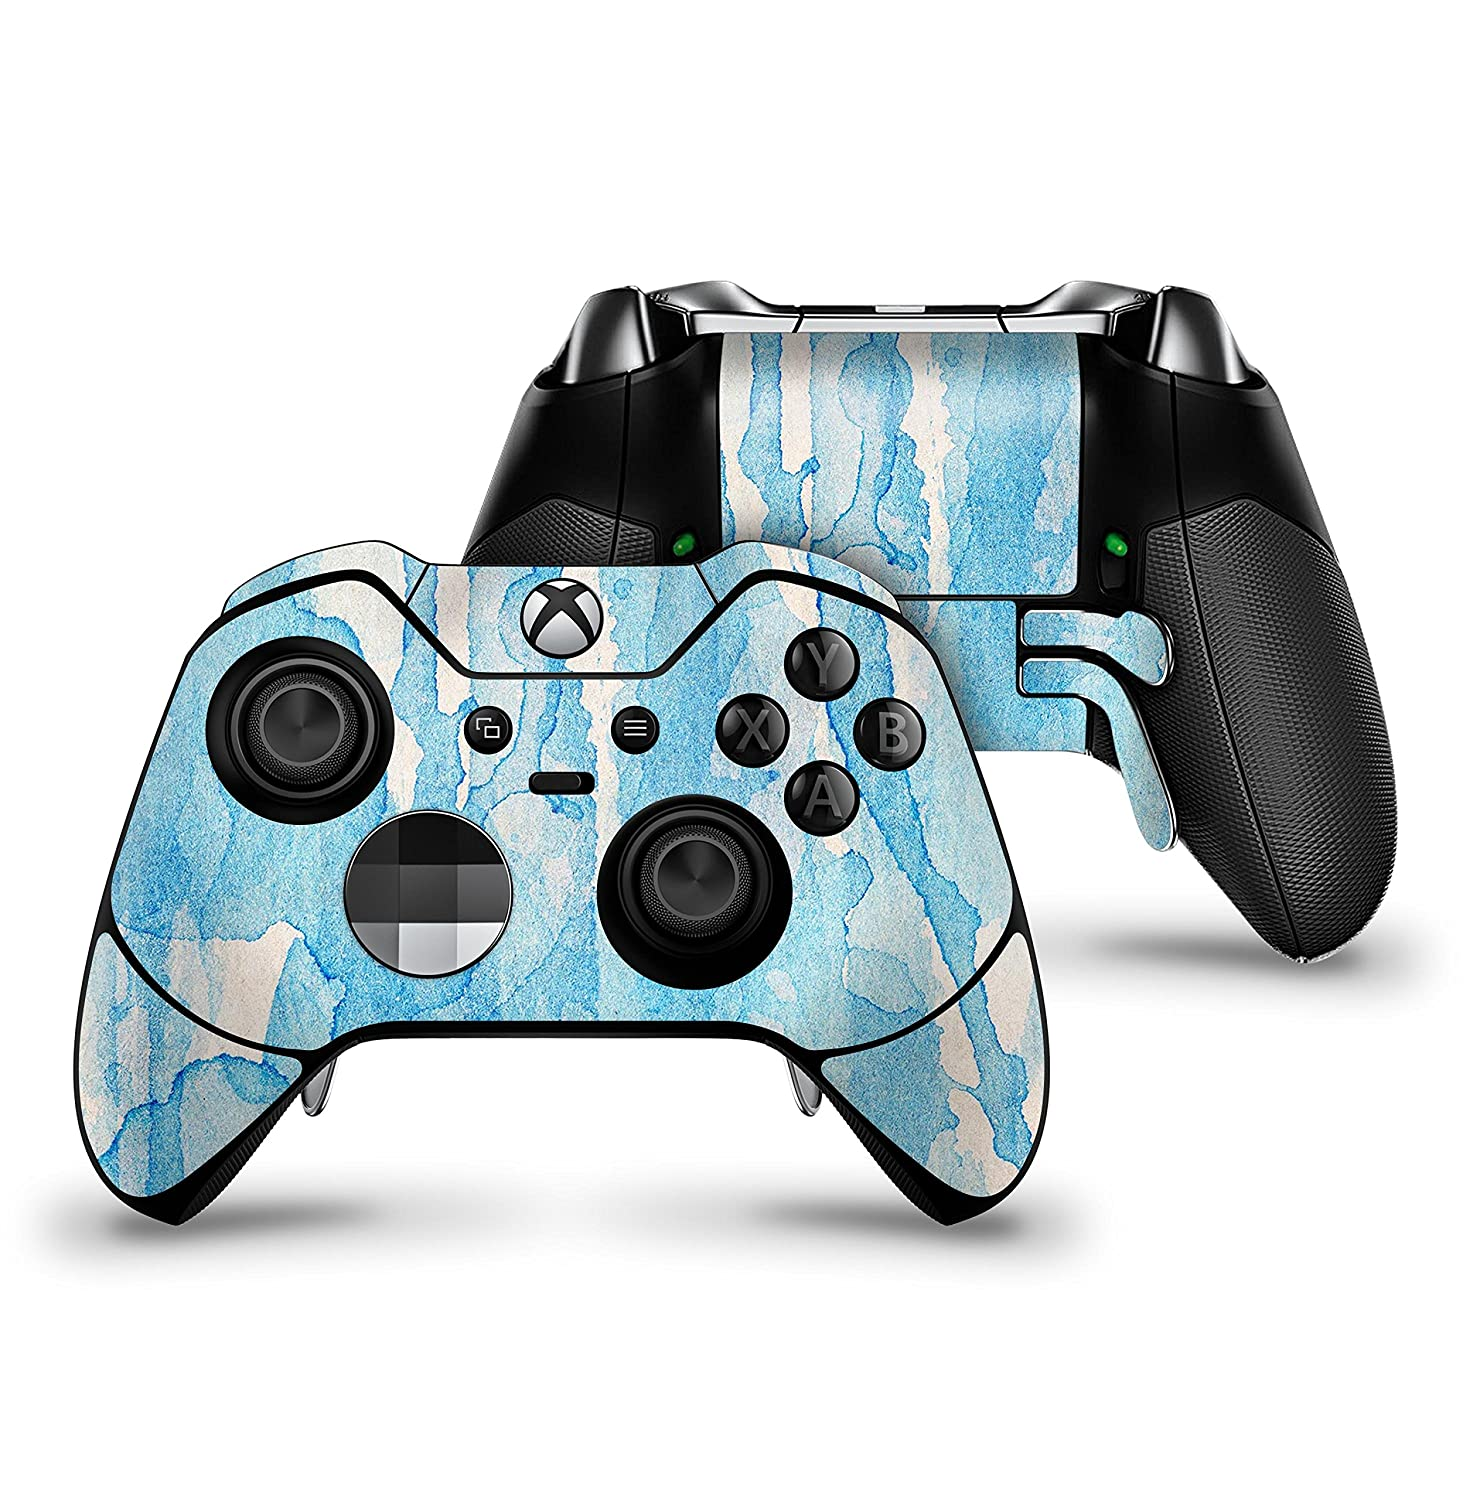 Blue Watercolor Drizzle - Protective Vinyl DesignSkinz Decal Sticker Skin-Kit for the Microsoft Xbox ONE Elite Controller